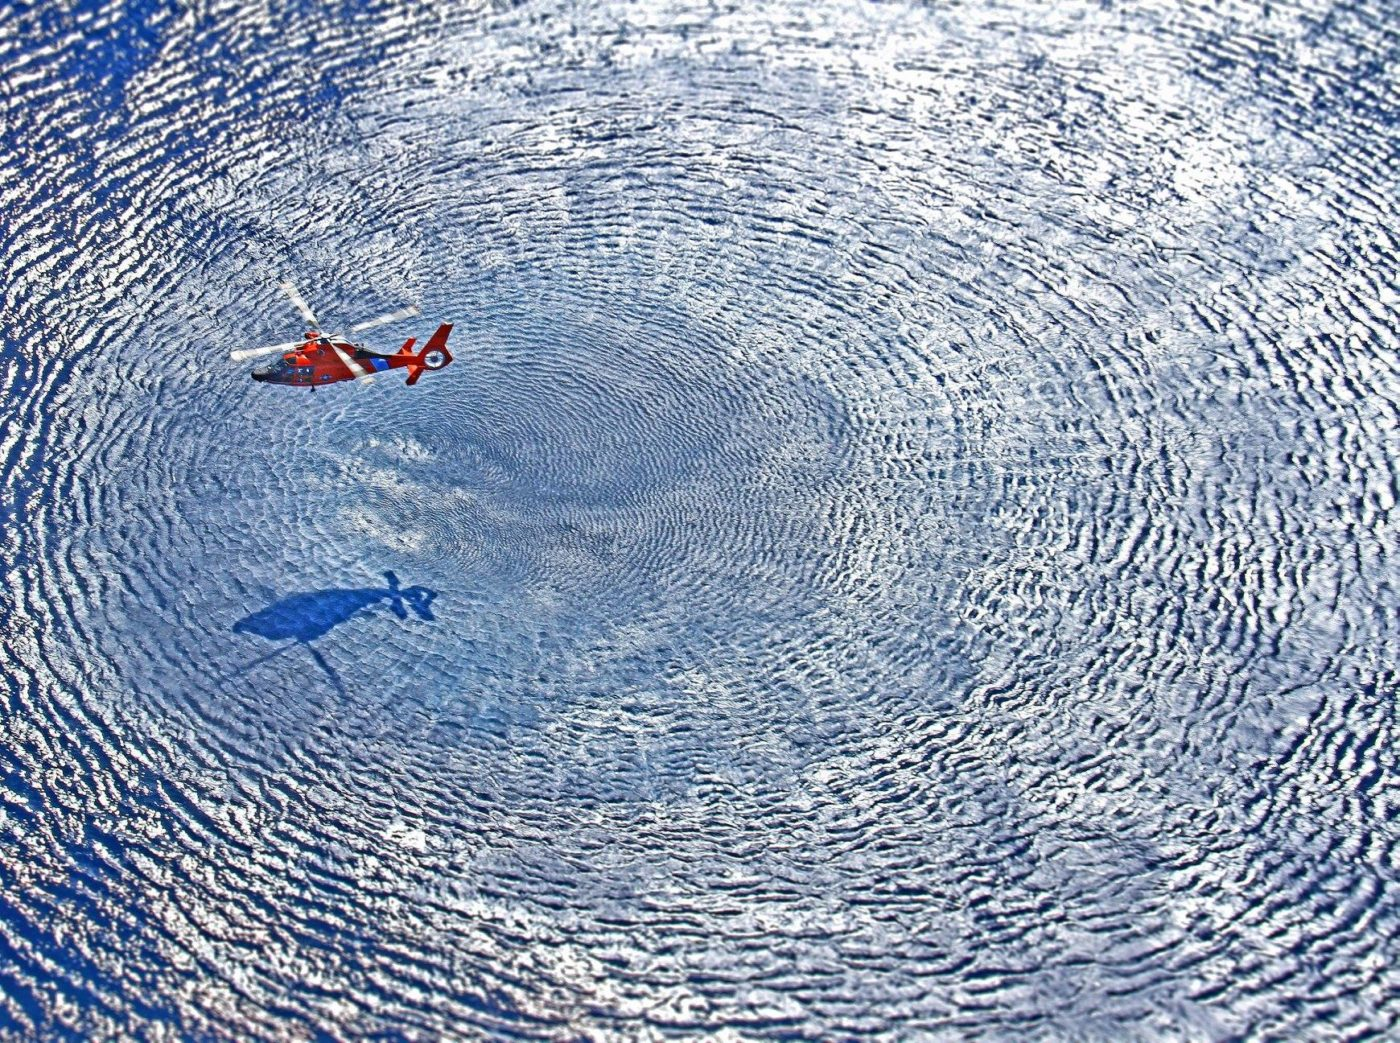 Hover down-wash from an Airbus MH-65D Dolphin. Photo submitted by Matt Udkow